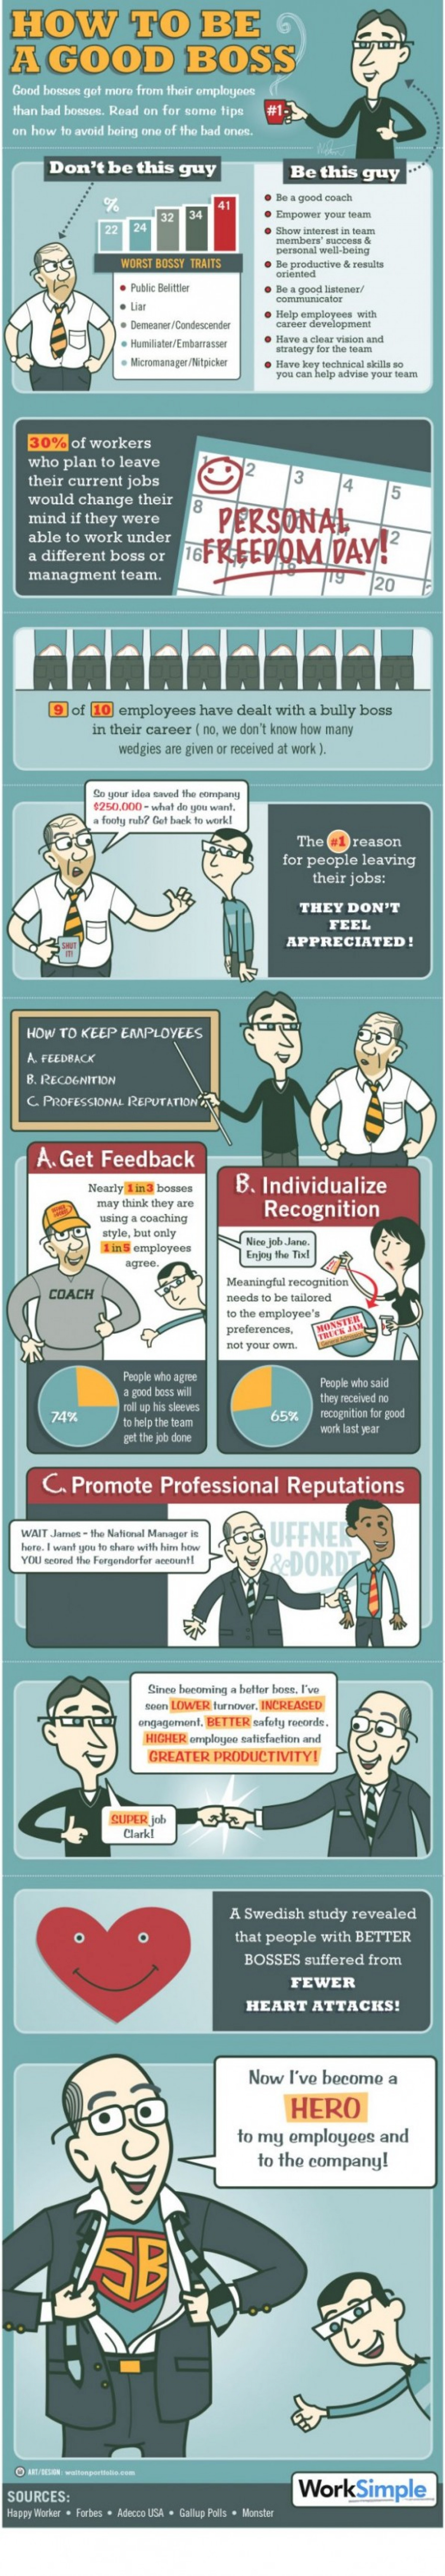 How to be a Good Boss Infographic